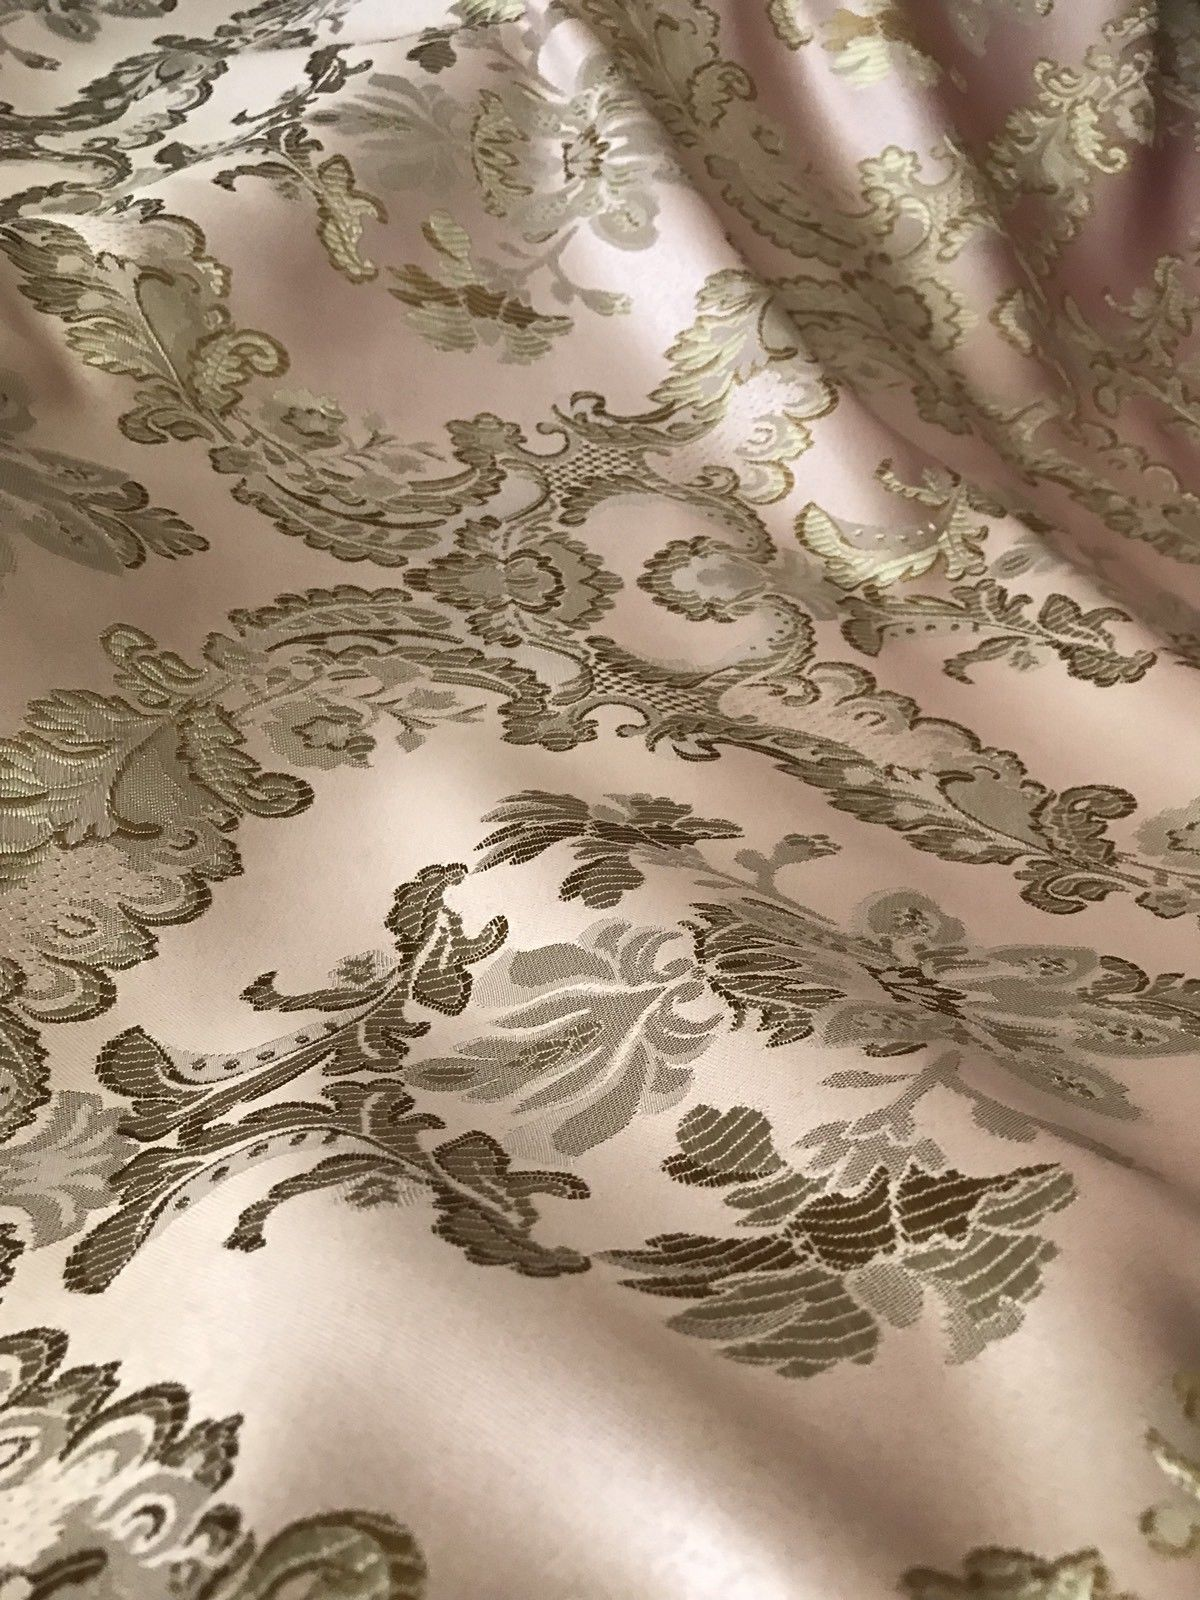 "SWATCH 110"" Wide- Designer Brocade Jacquard Fabric- Antique Pink Gold- Damask - Fancy Styles Fabric Boutique"